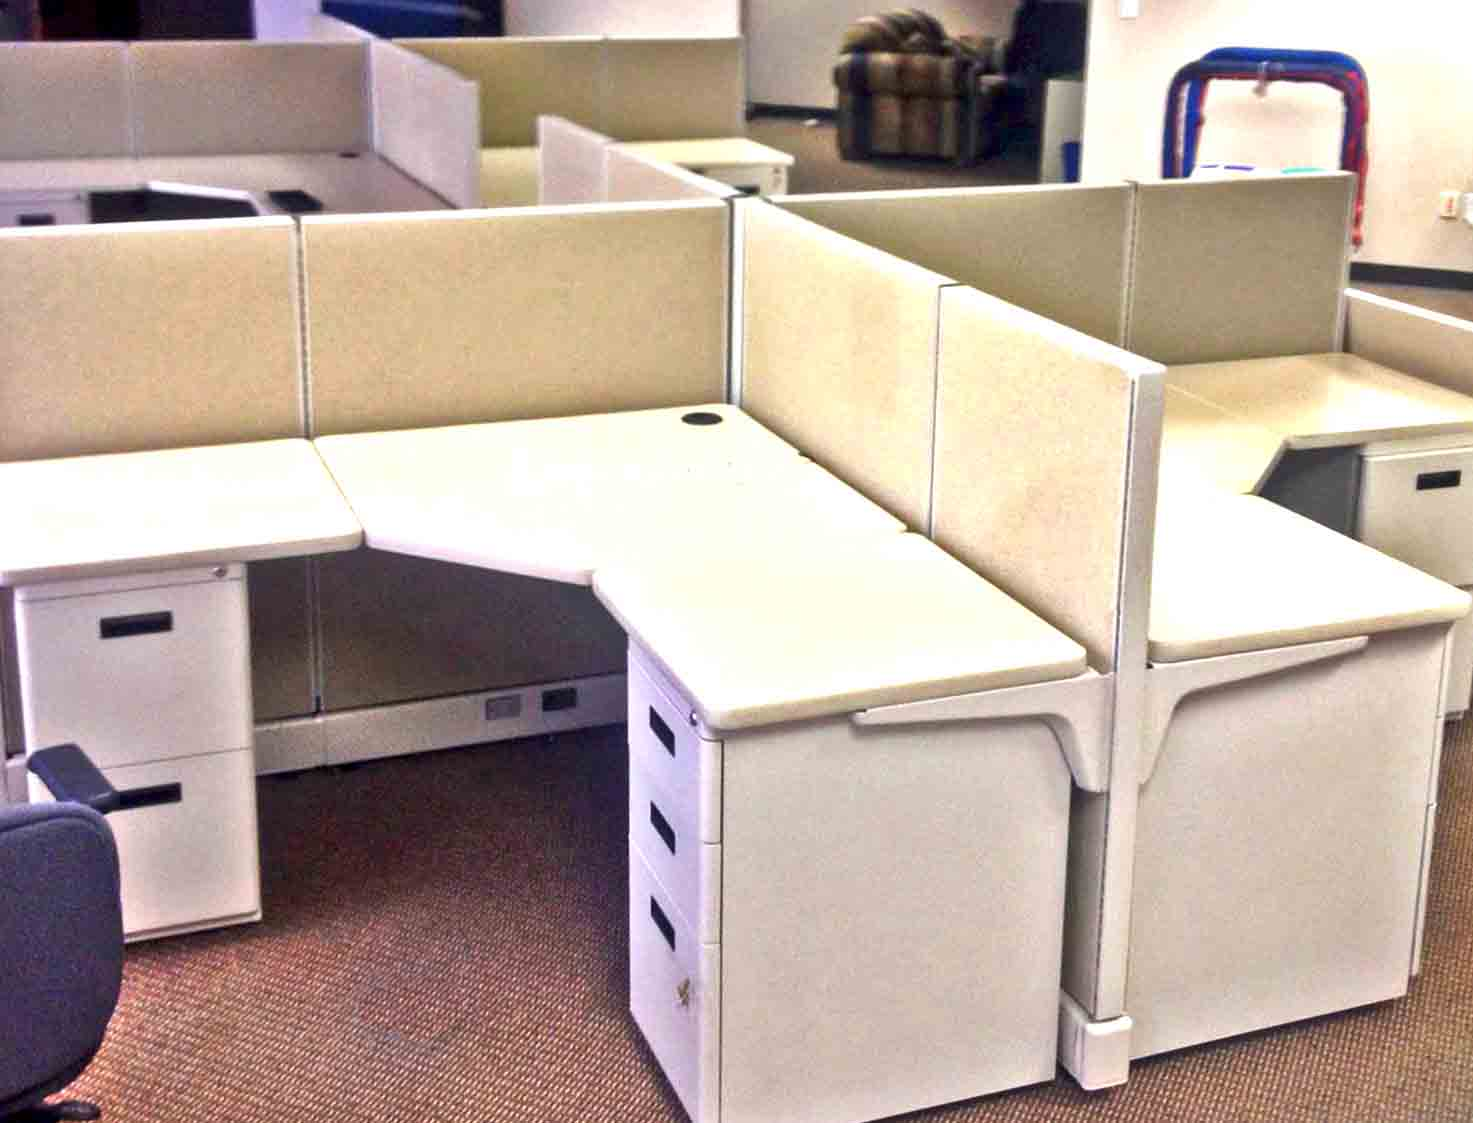 cheap office cubicles. SAVVI Commercial And Office Furniture | Affordable High Quality Cubicles-The Herman Miller Acoustical Cubicle Workstation Delivers Greater Performance Cheap Cubicles